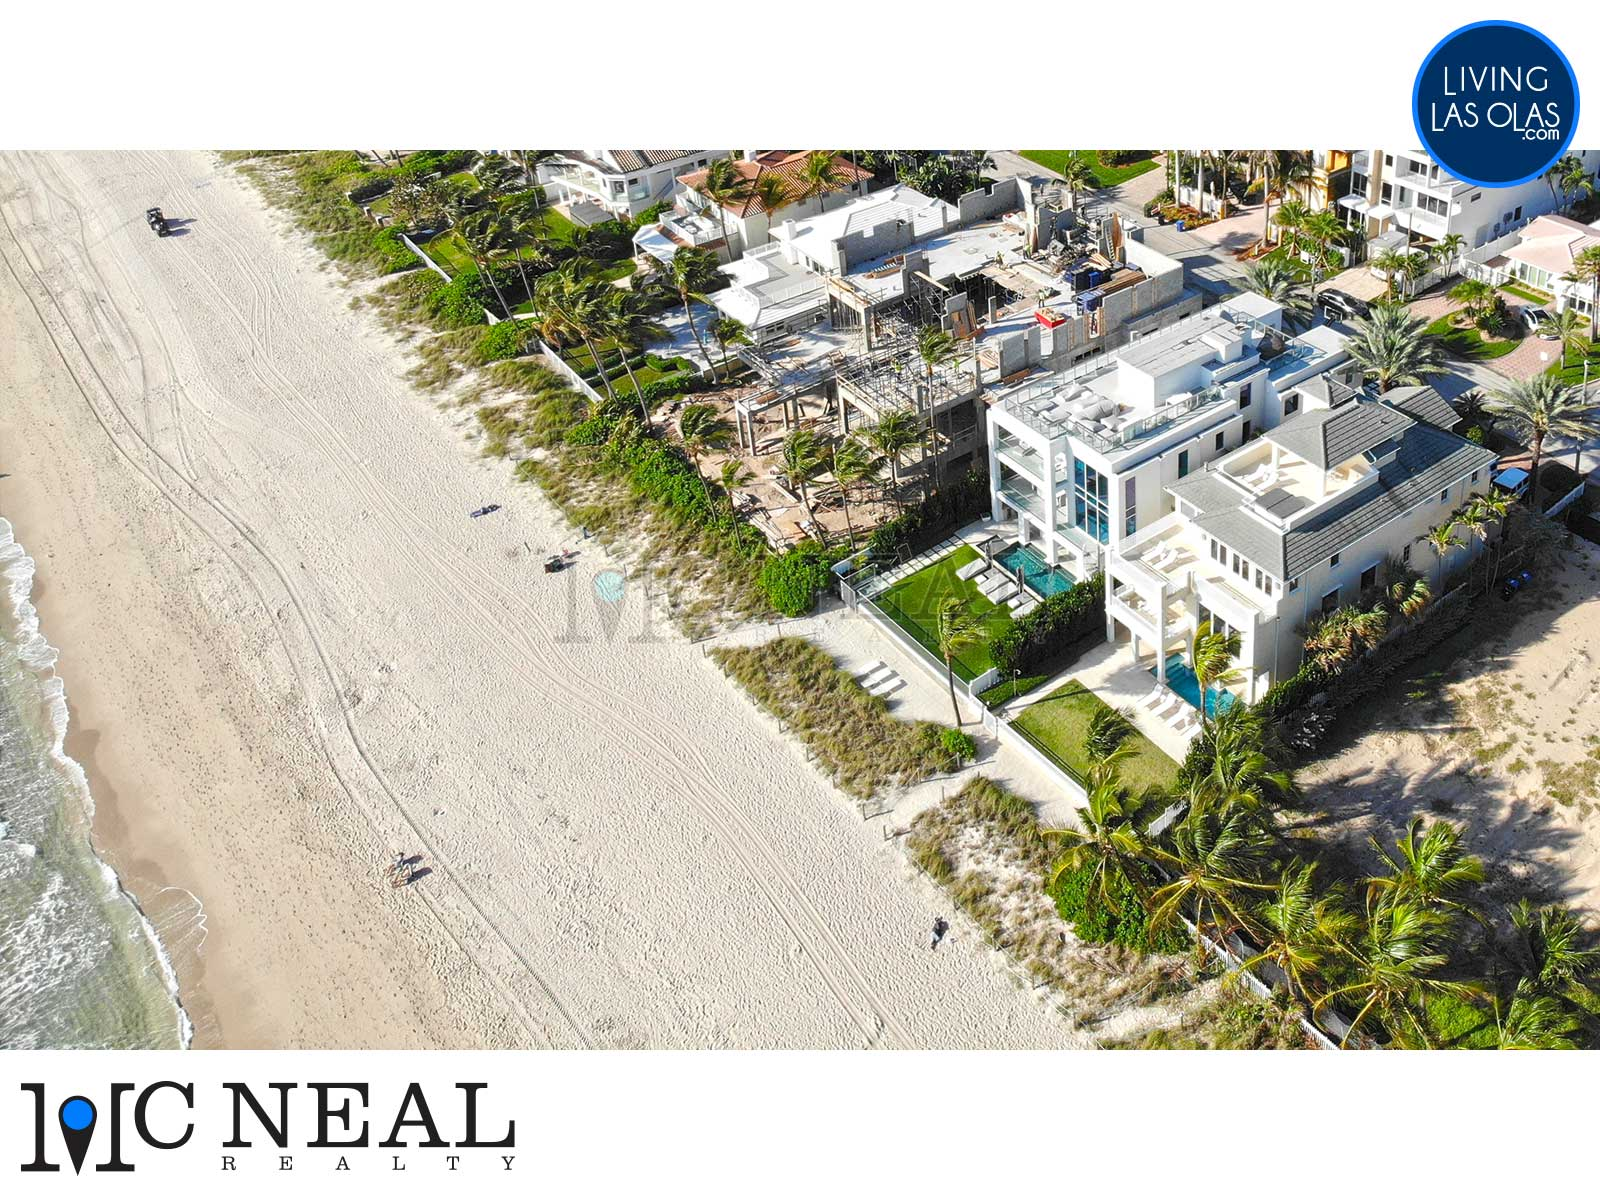 Lauderdale Beach Homes Real Estate 01